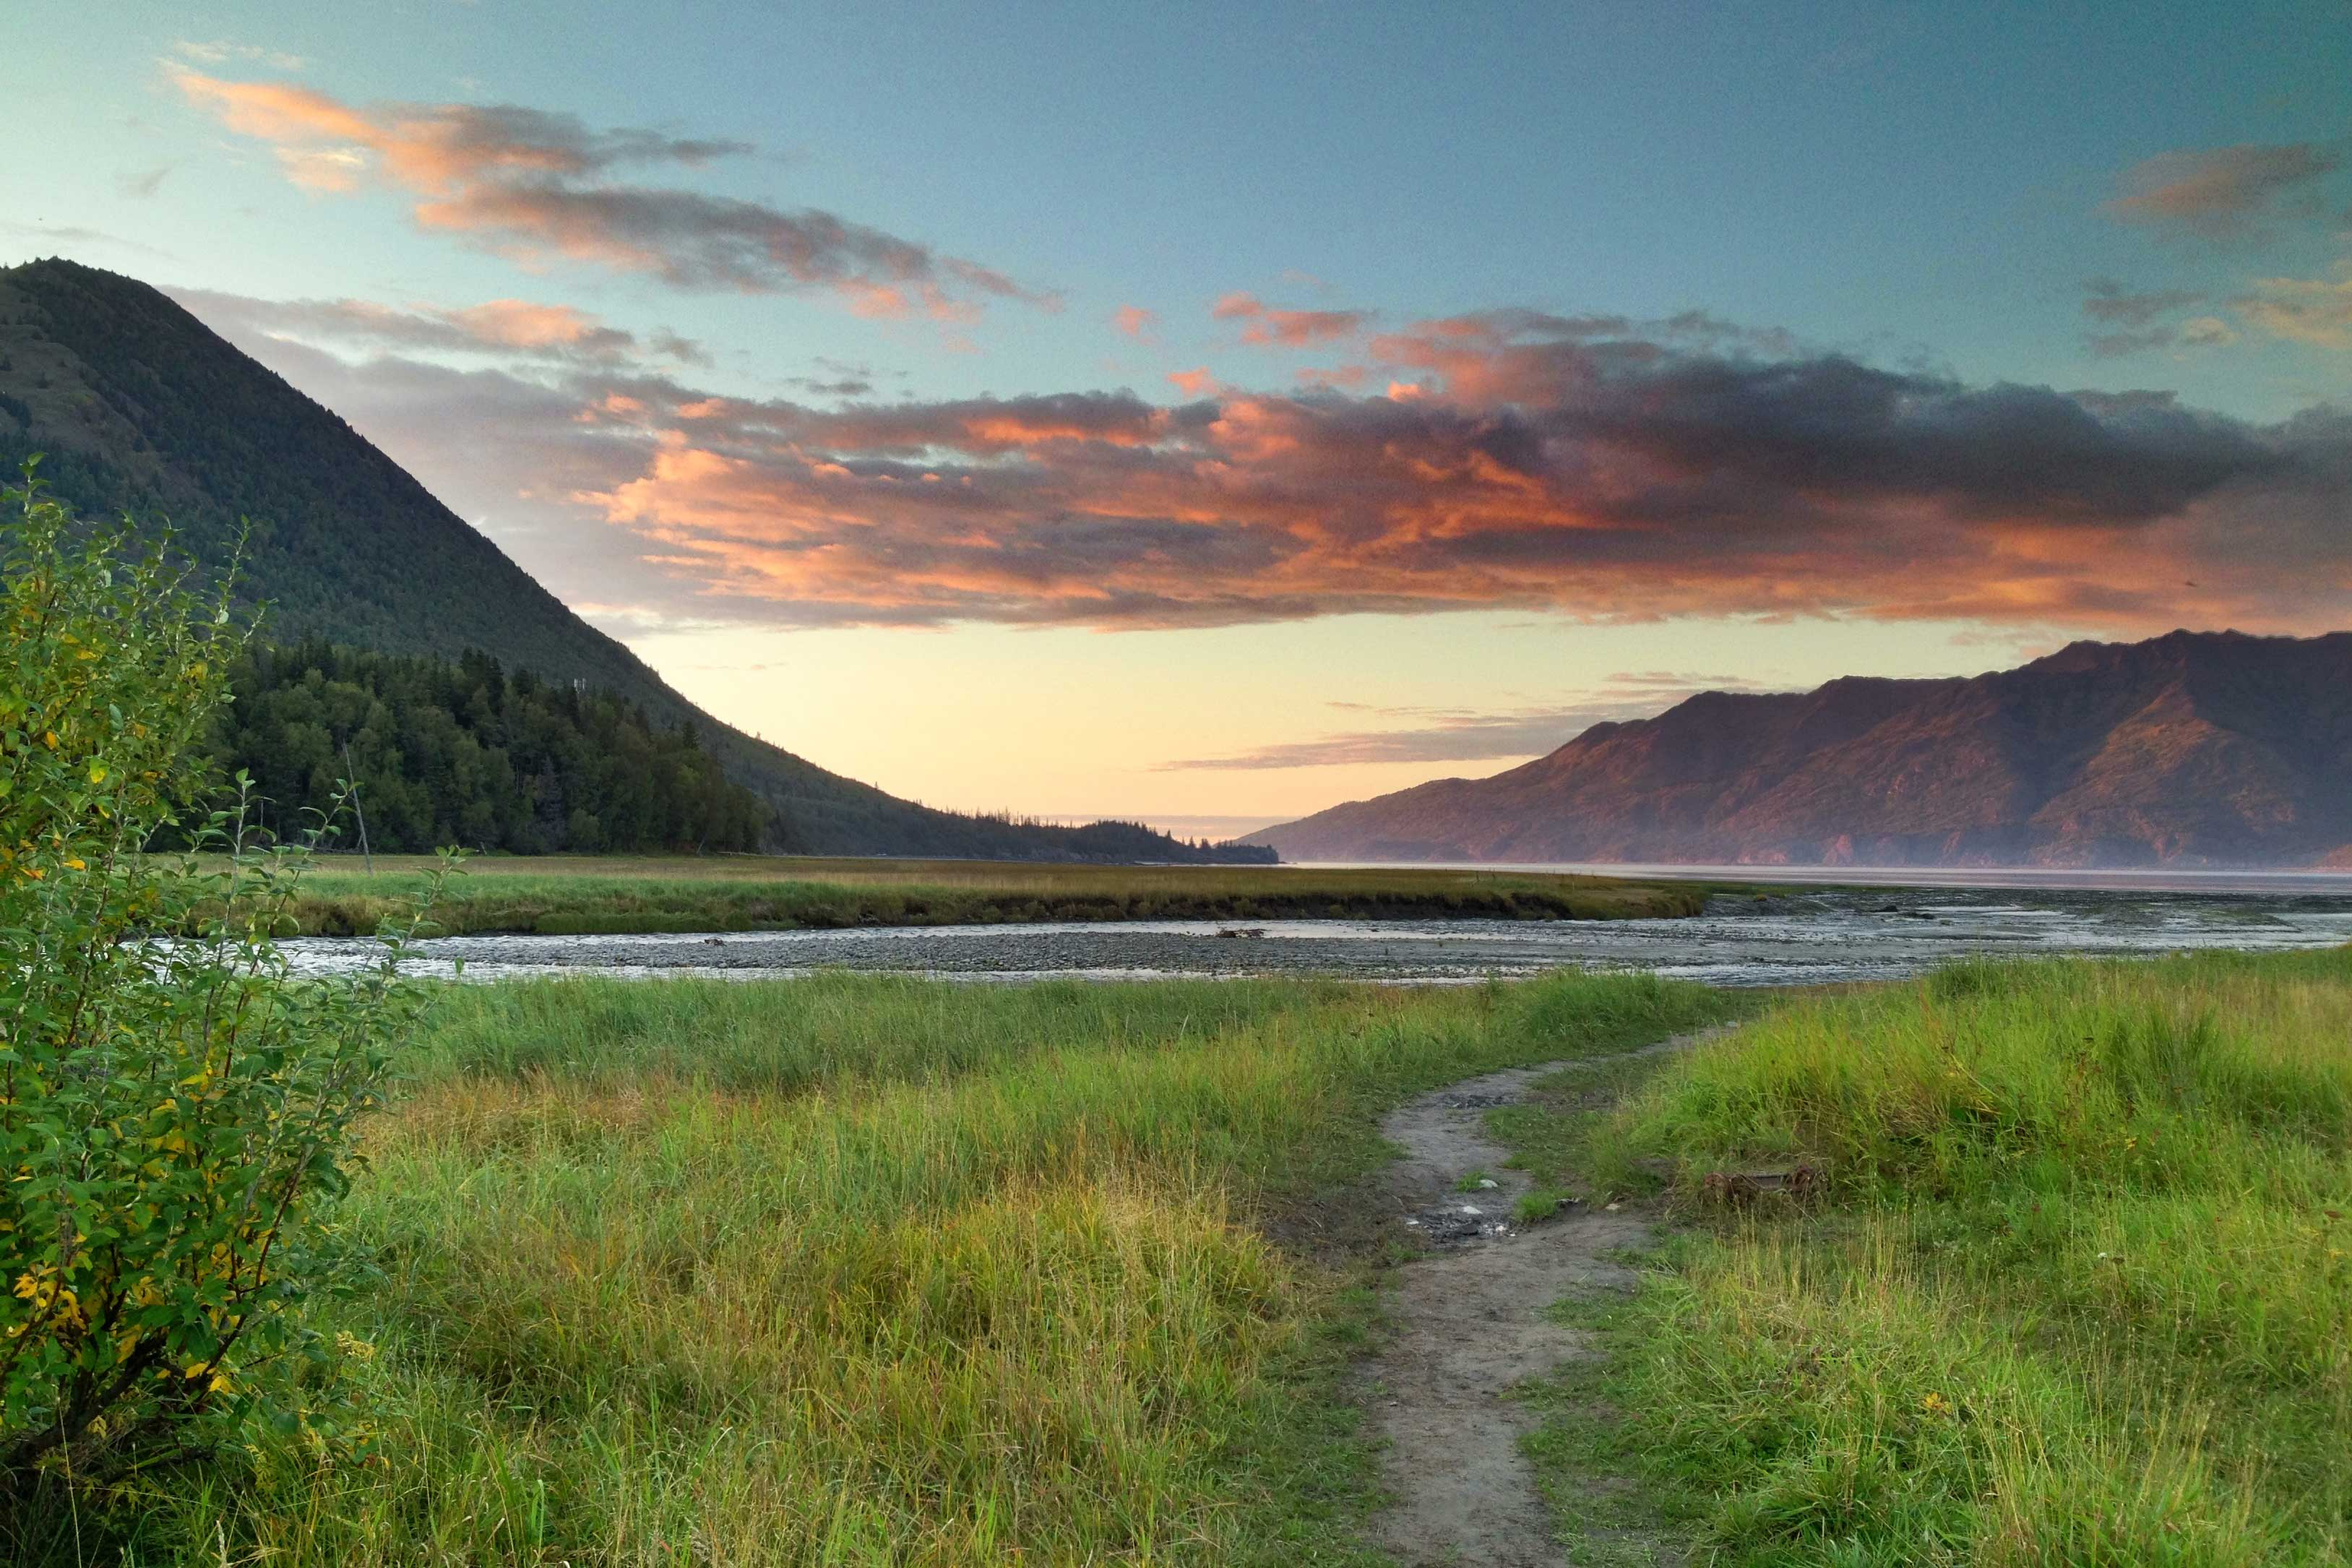 Bring your family to enjoy a scenic Alaskan retreat.